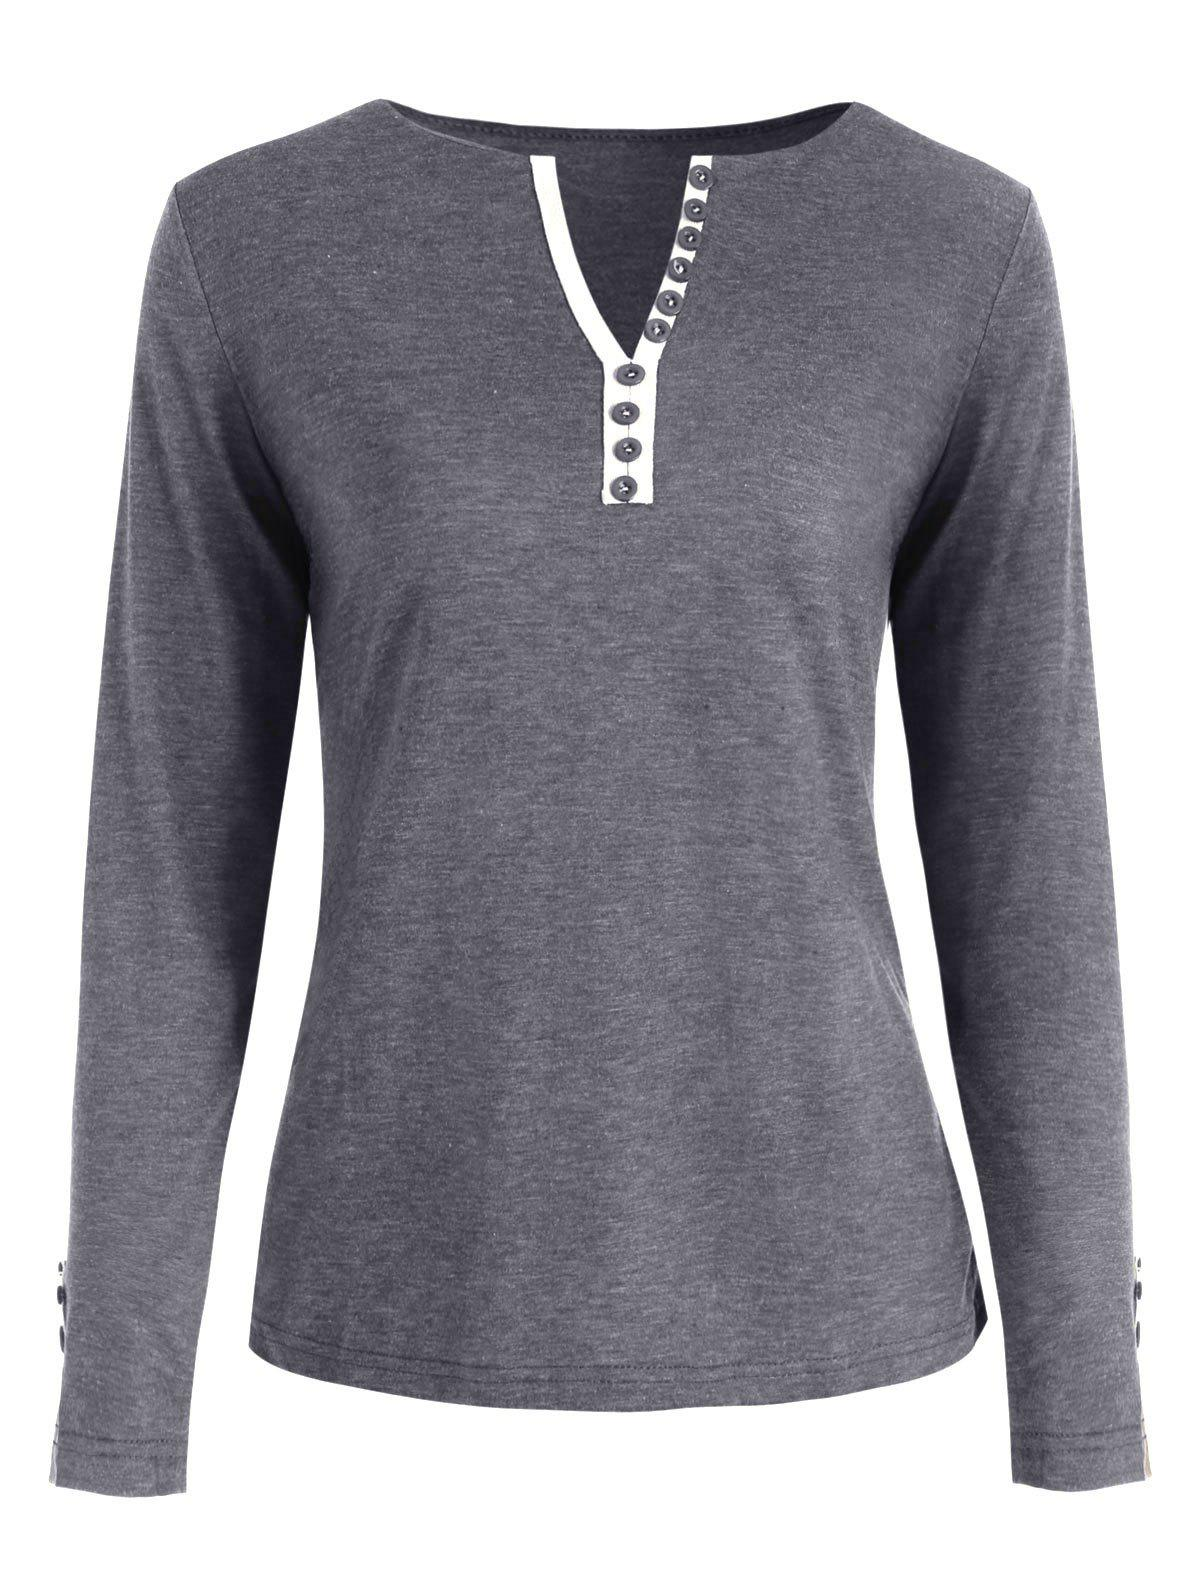 Chic V Neck Long Sleeve Button Embellished T-shirt